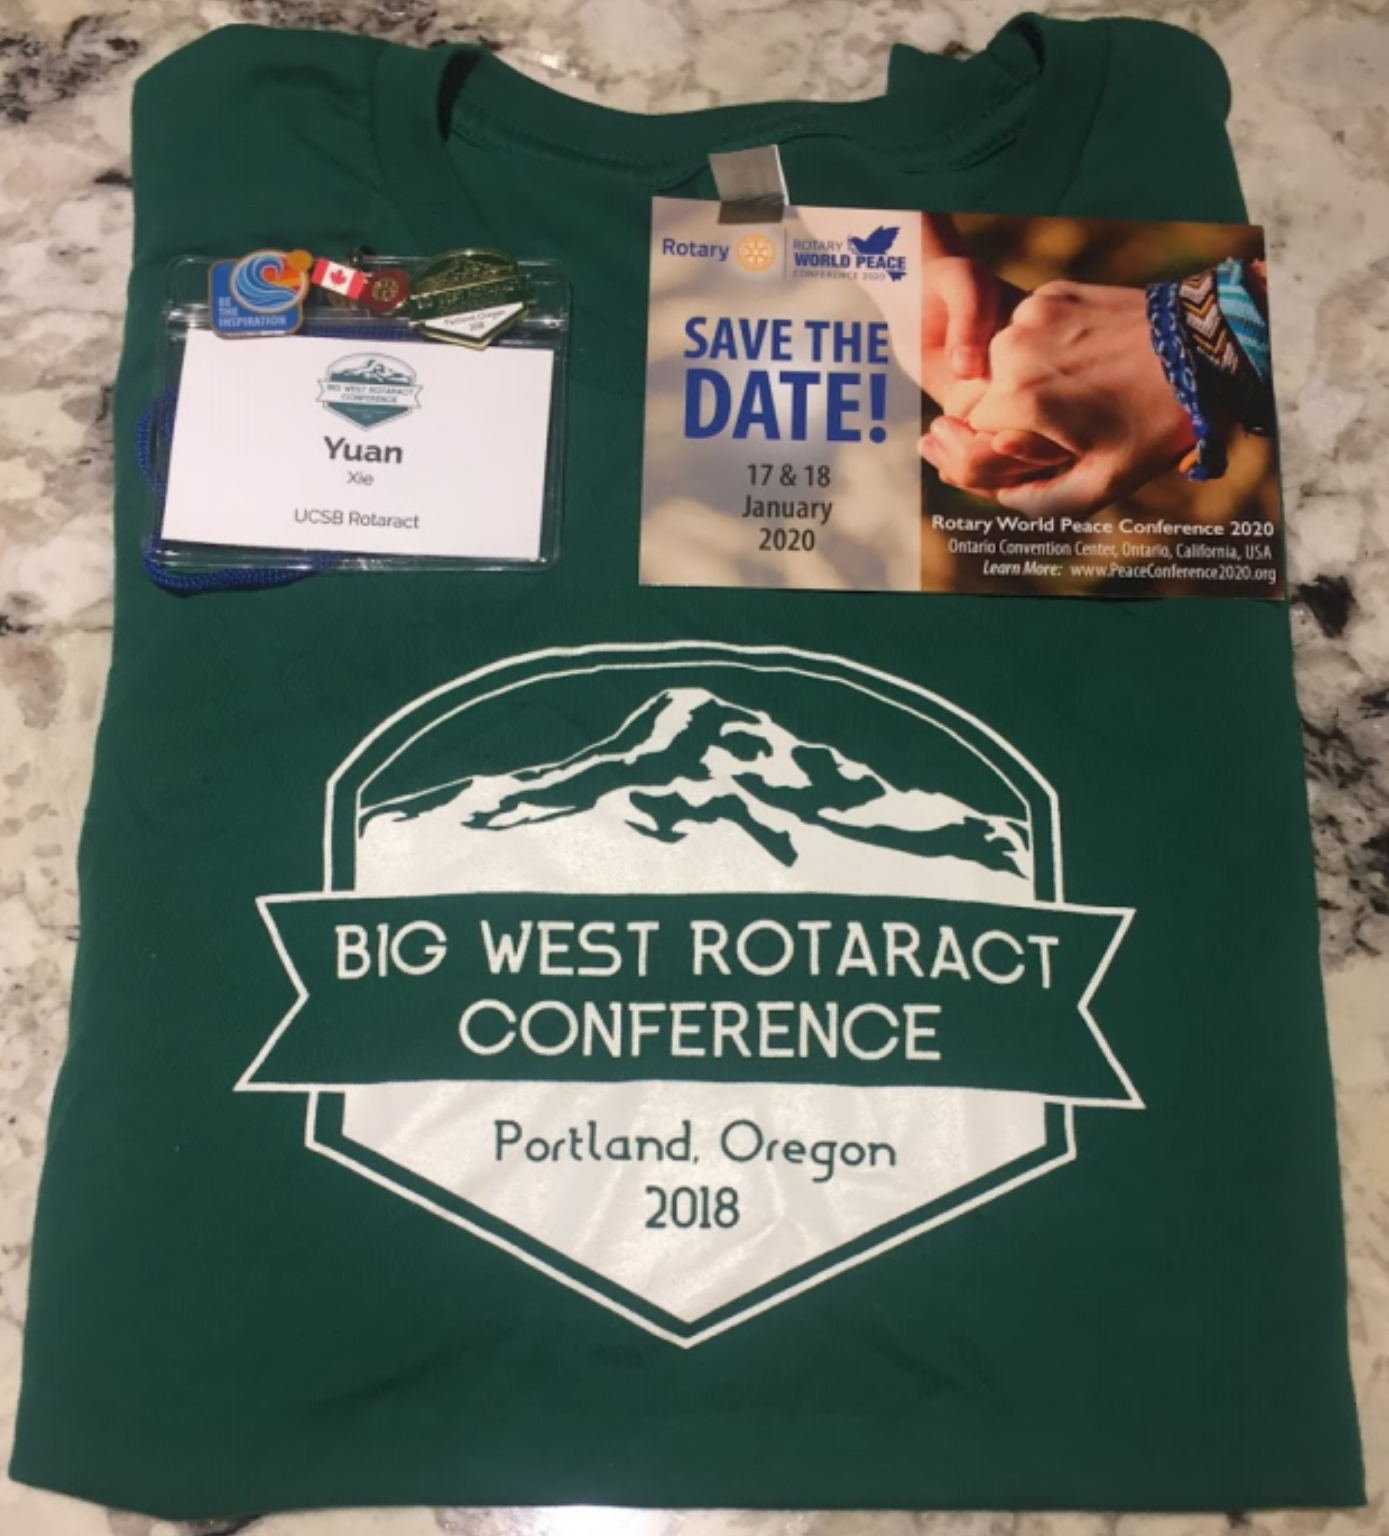 Rotary District 5240